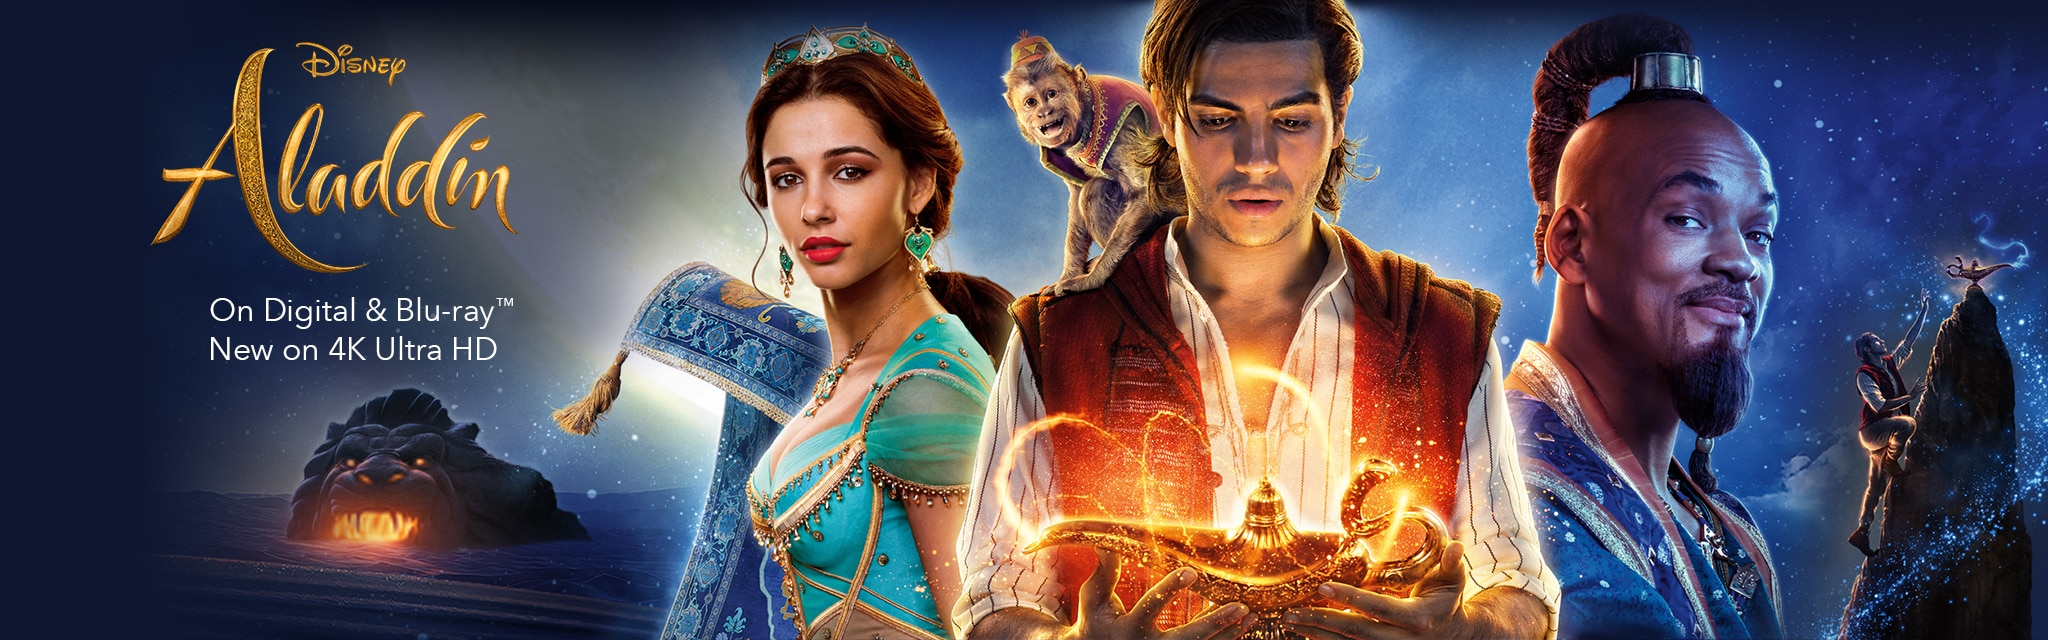 Disney Aladdin - On Digital and Blu-ray. New on 4K Ultra HD.